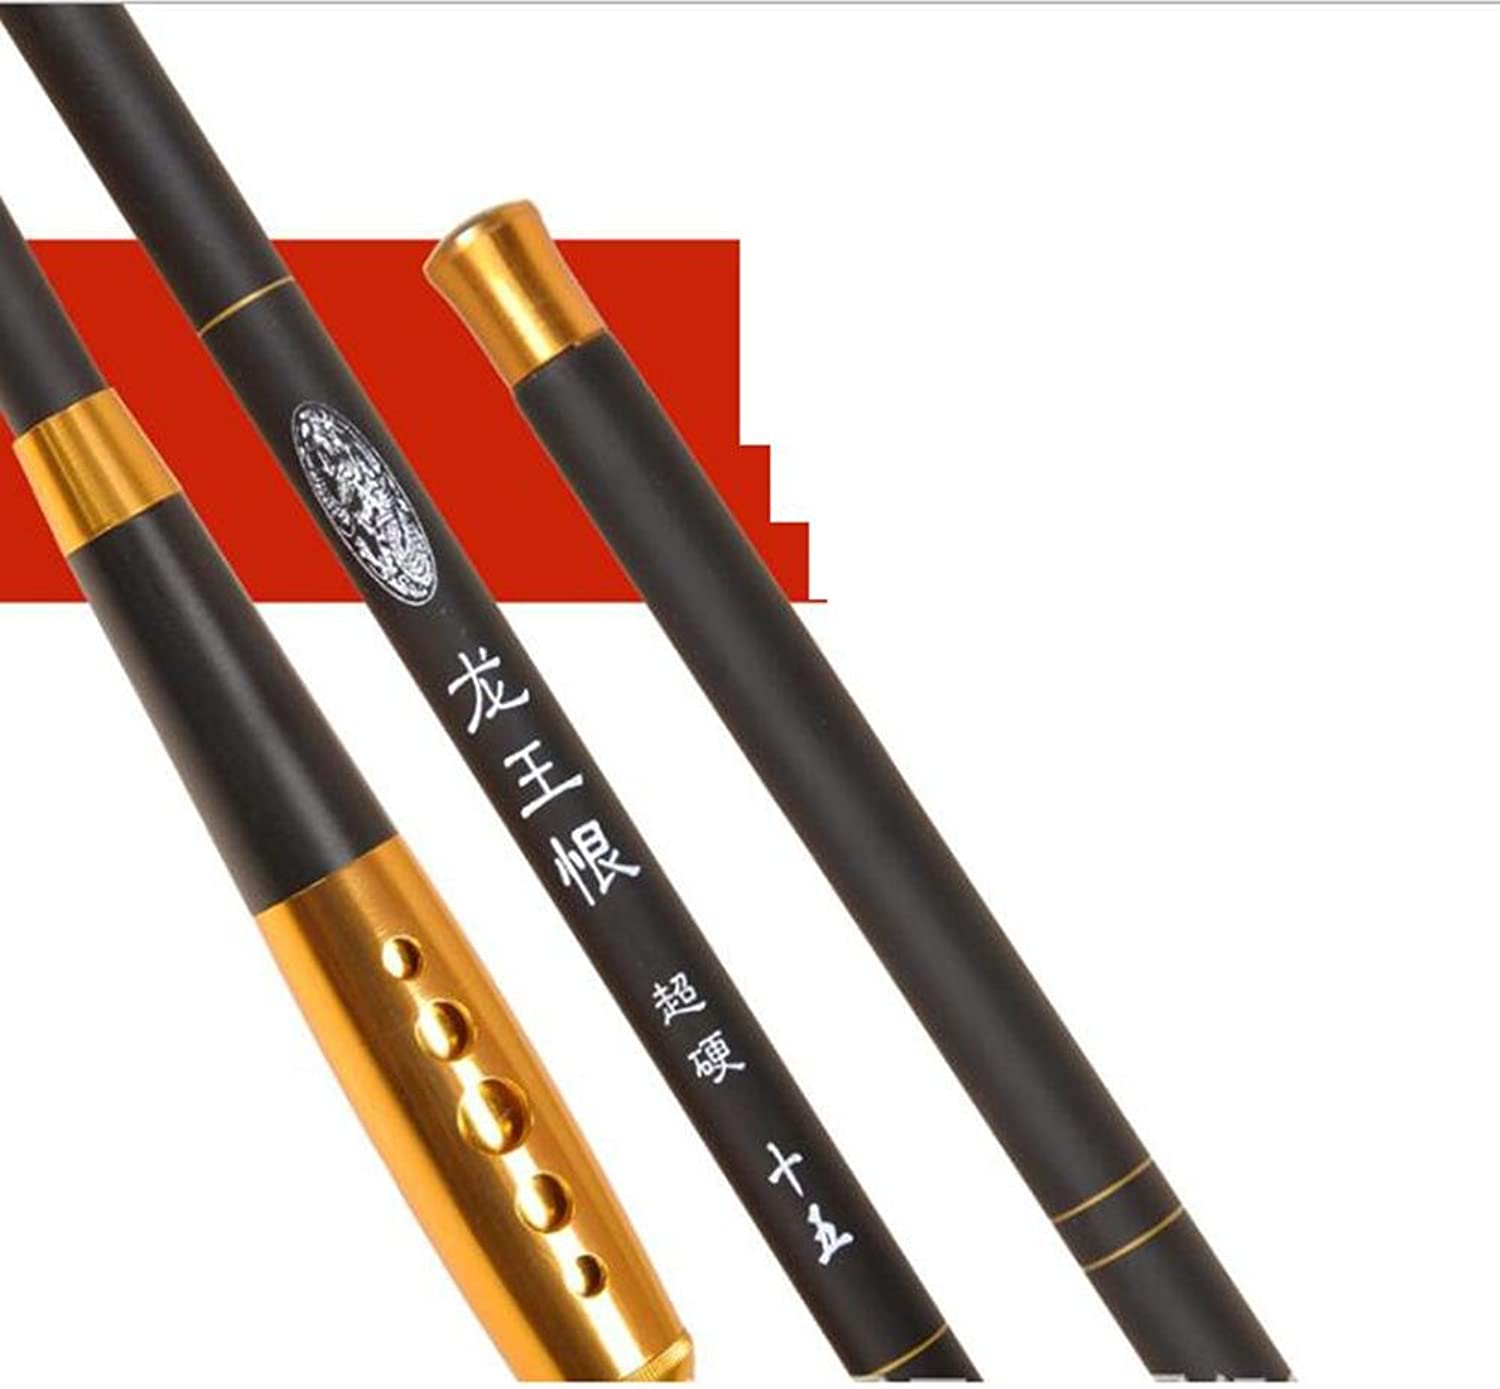 Portable Fishing Rods Telescopic Fishing Poles for Freshwater Travel Fishing(Four Size seleted)